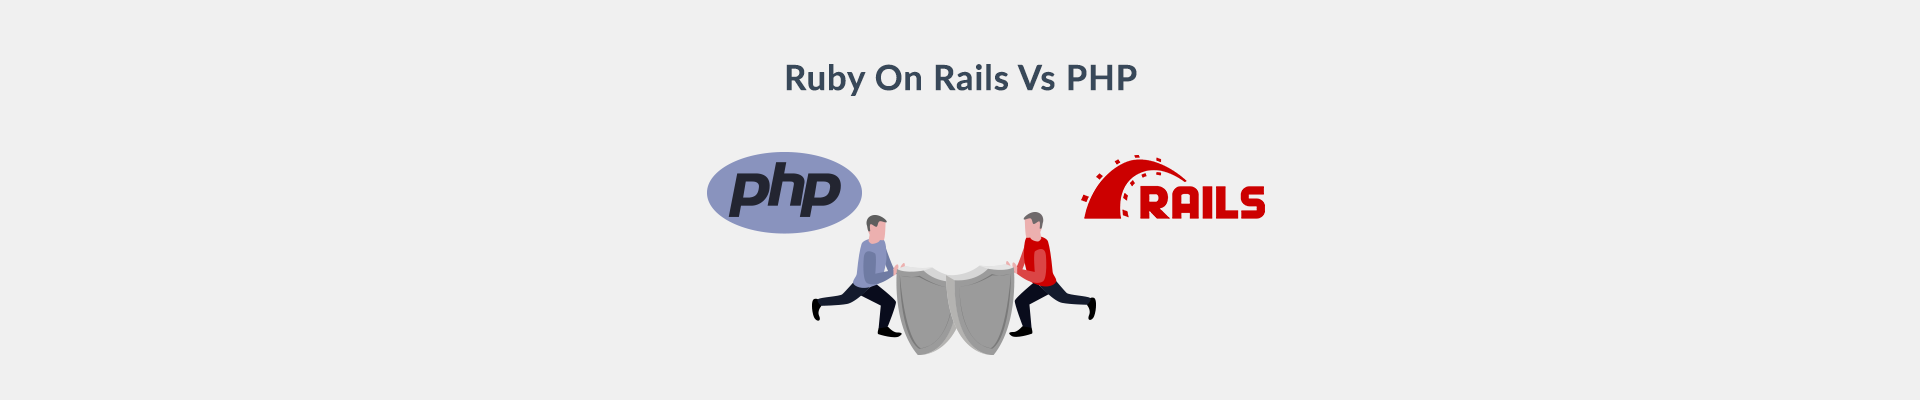 Ruby On Rails vs PHP